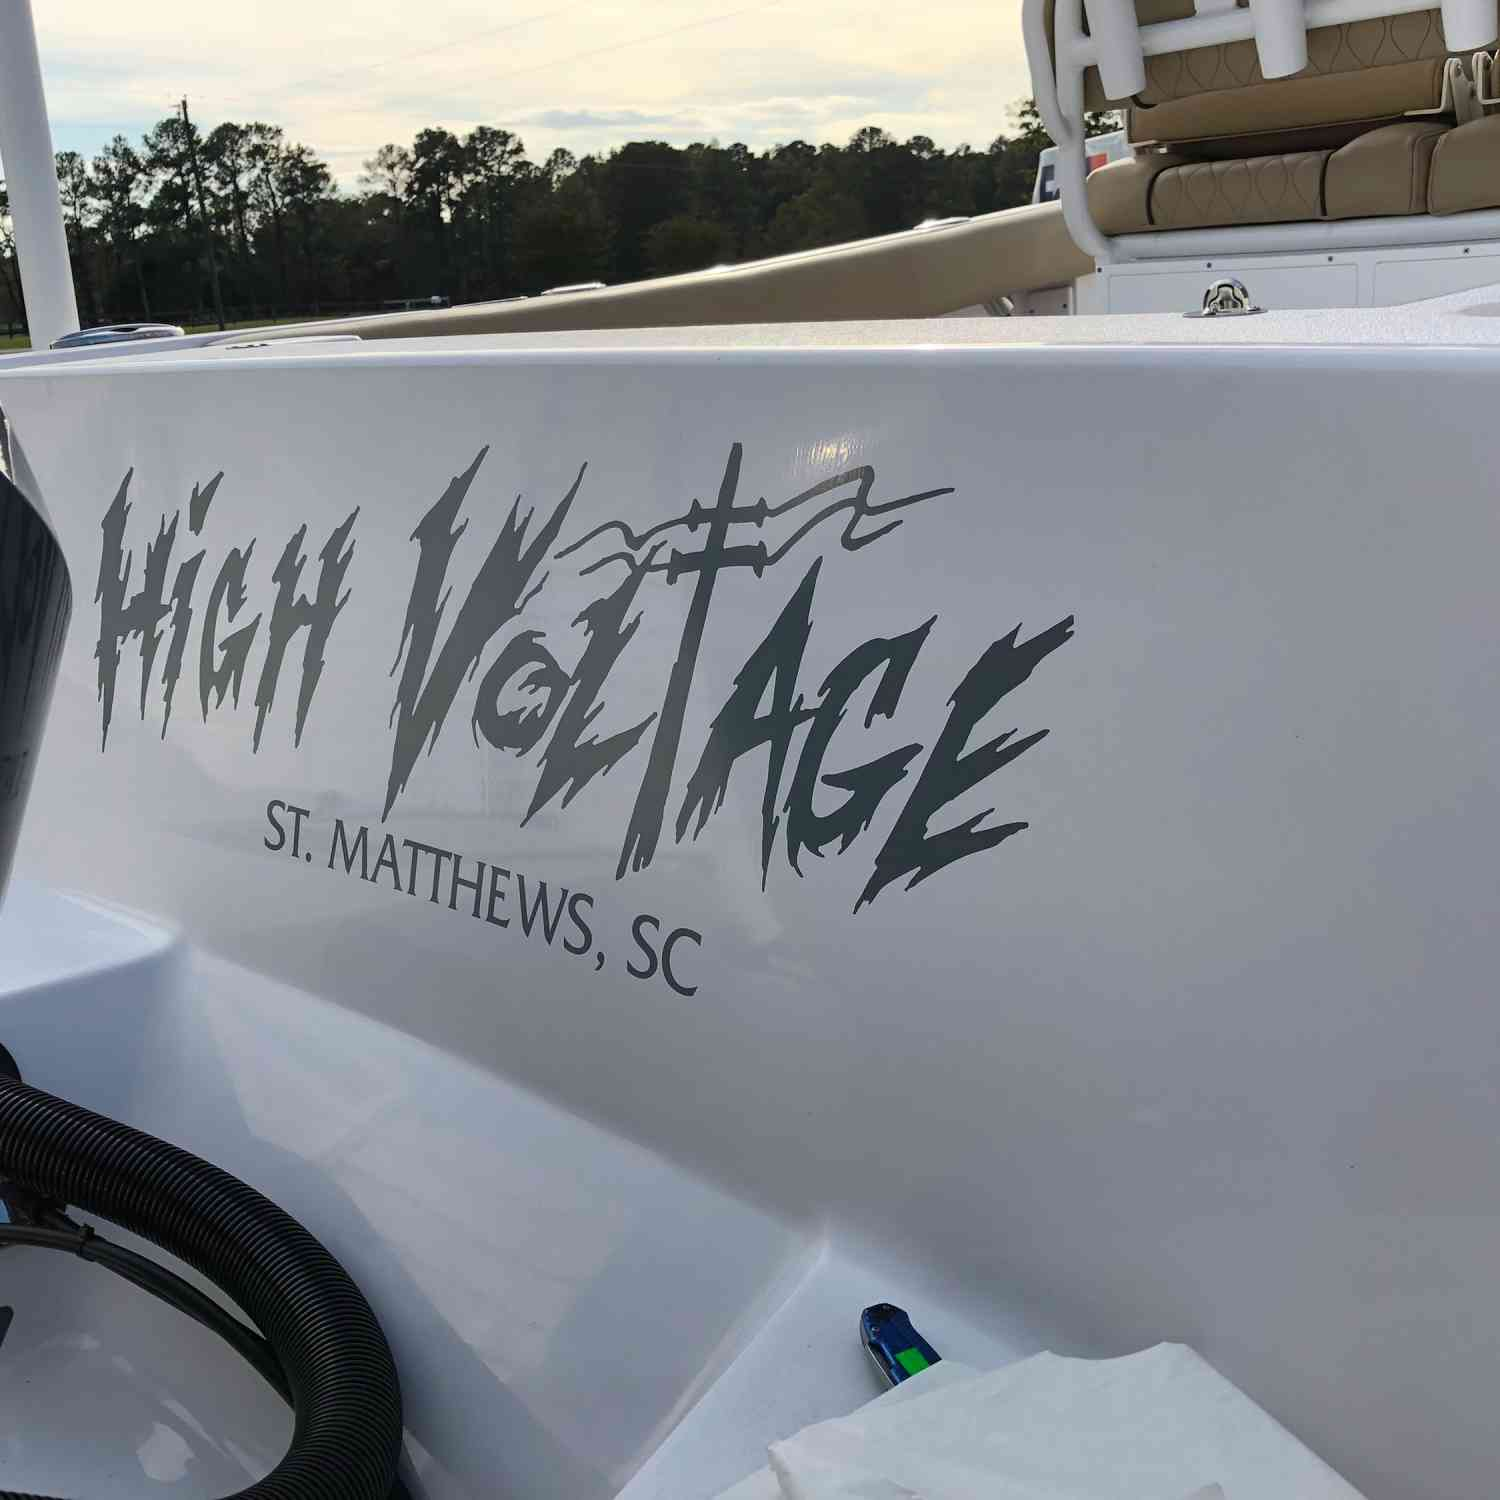 Title: Finally got the name on! - On board their Sportsman Open 232 Center Console - Location: St.Matthews SC. Participating in the Photo Contest #SportsmanNovember2018